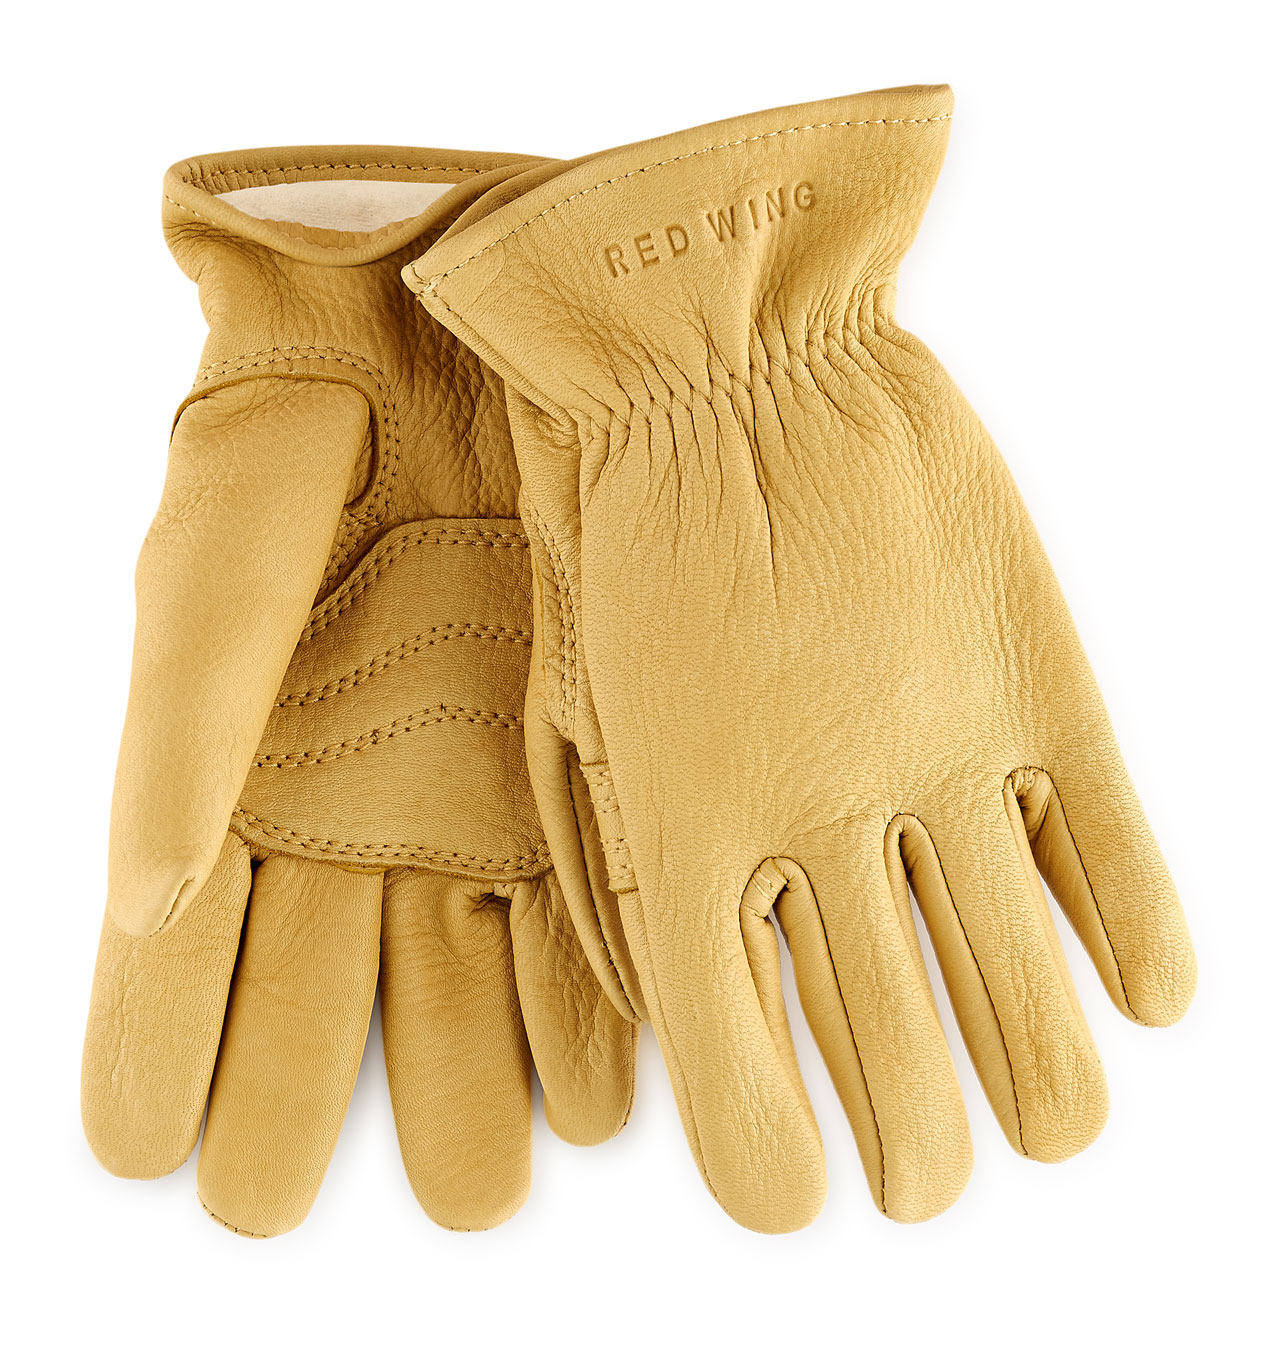 Red Wing - 95237 Buckskin Leather Lined Glove - Yellow